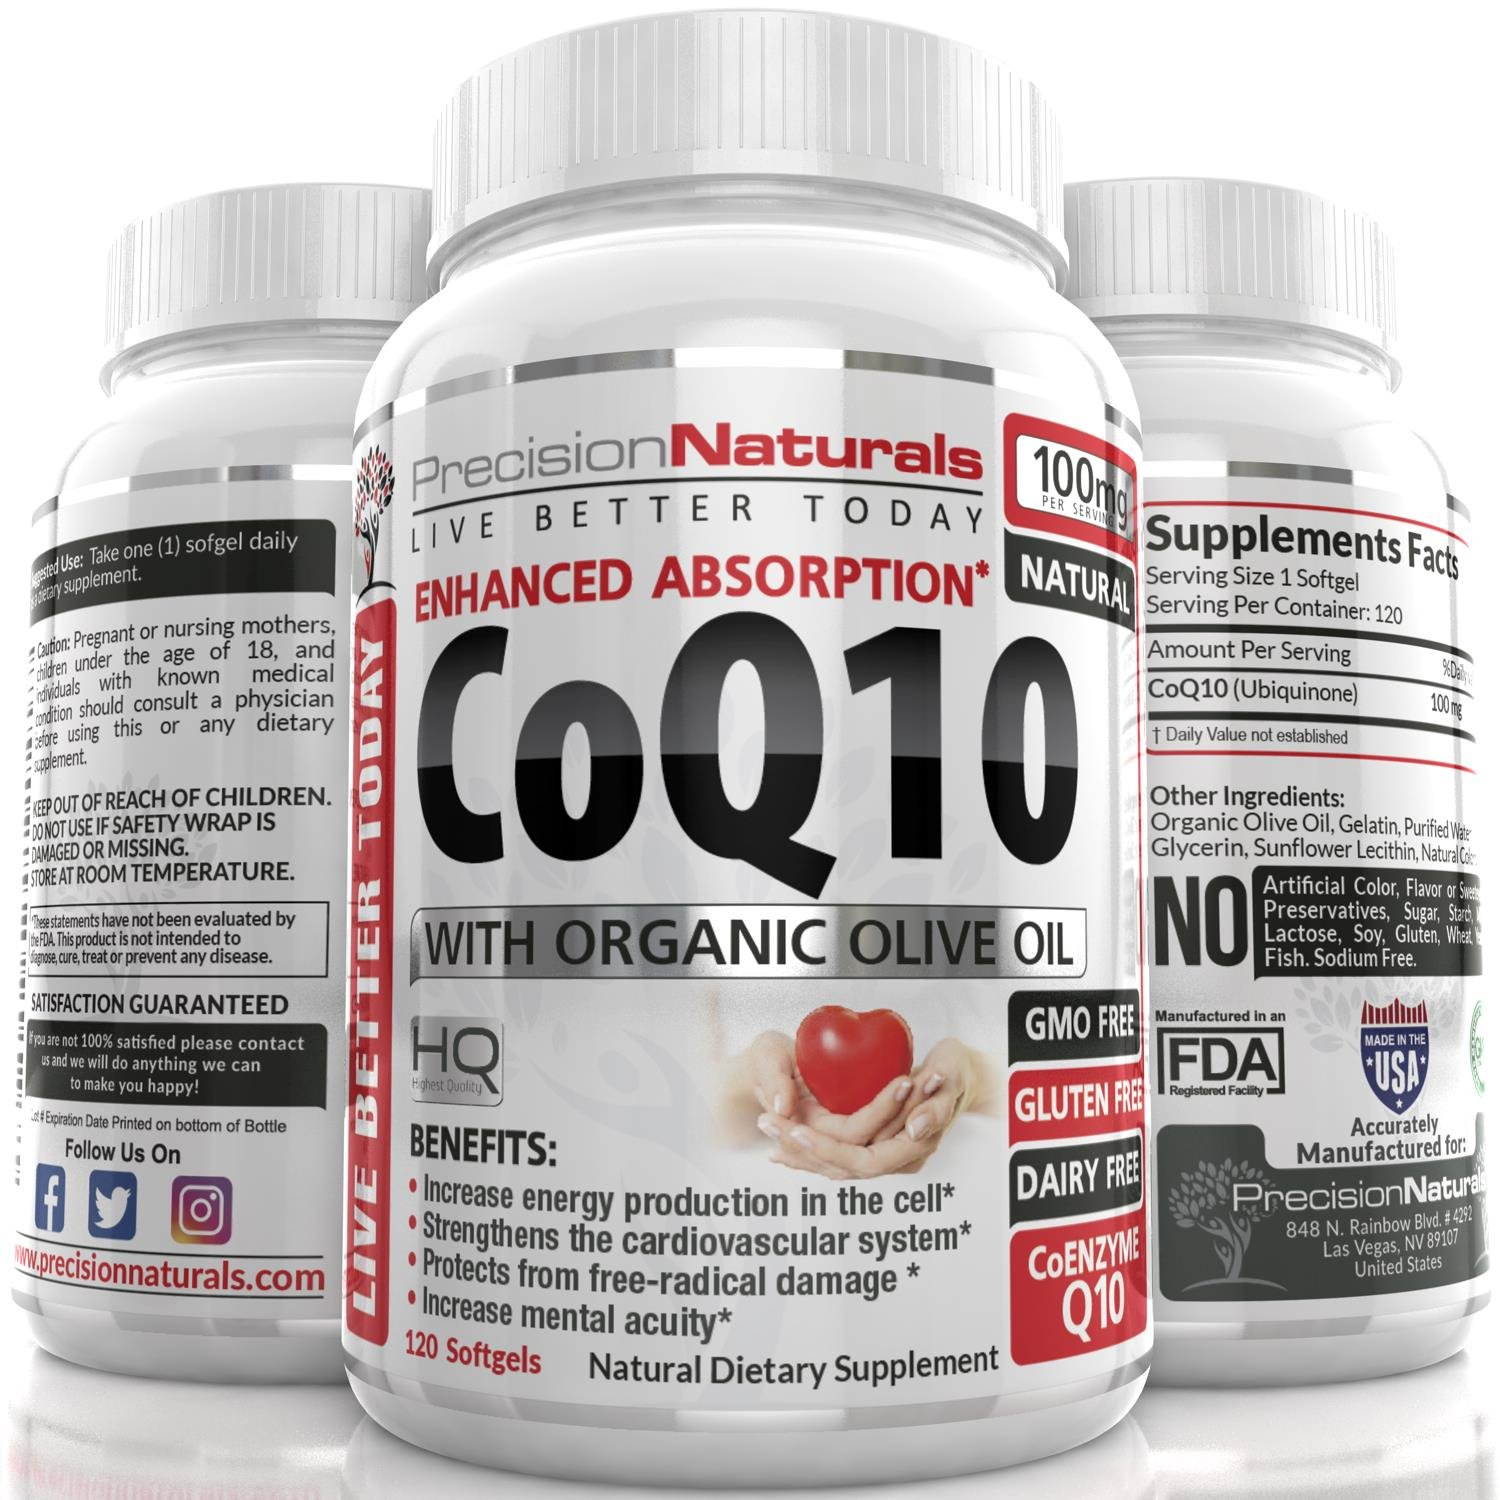 Coenzyme Q10 CoQ10 100mg Softgels/Capsules High Absorption Ubiquinone Supplement 120 Count The Best Vitamin for Your Heart Health/Fertility With Organic Olive Oil